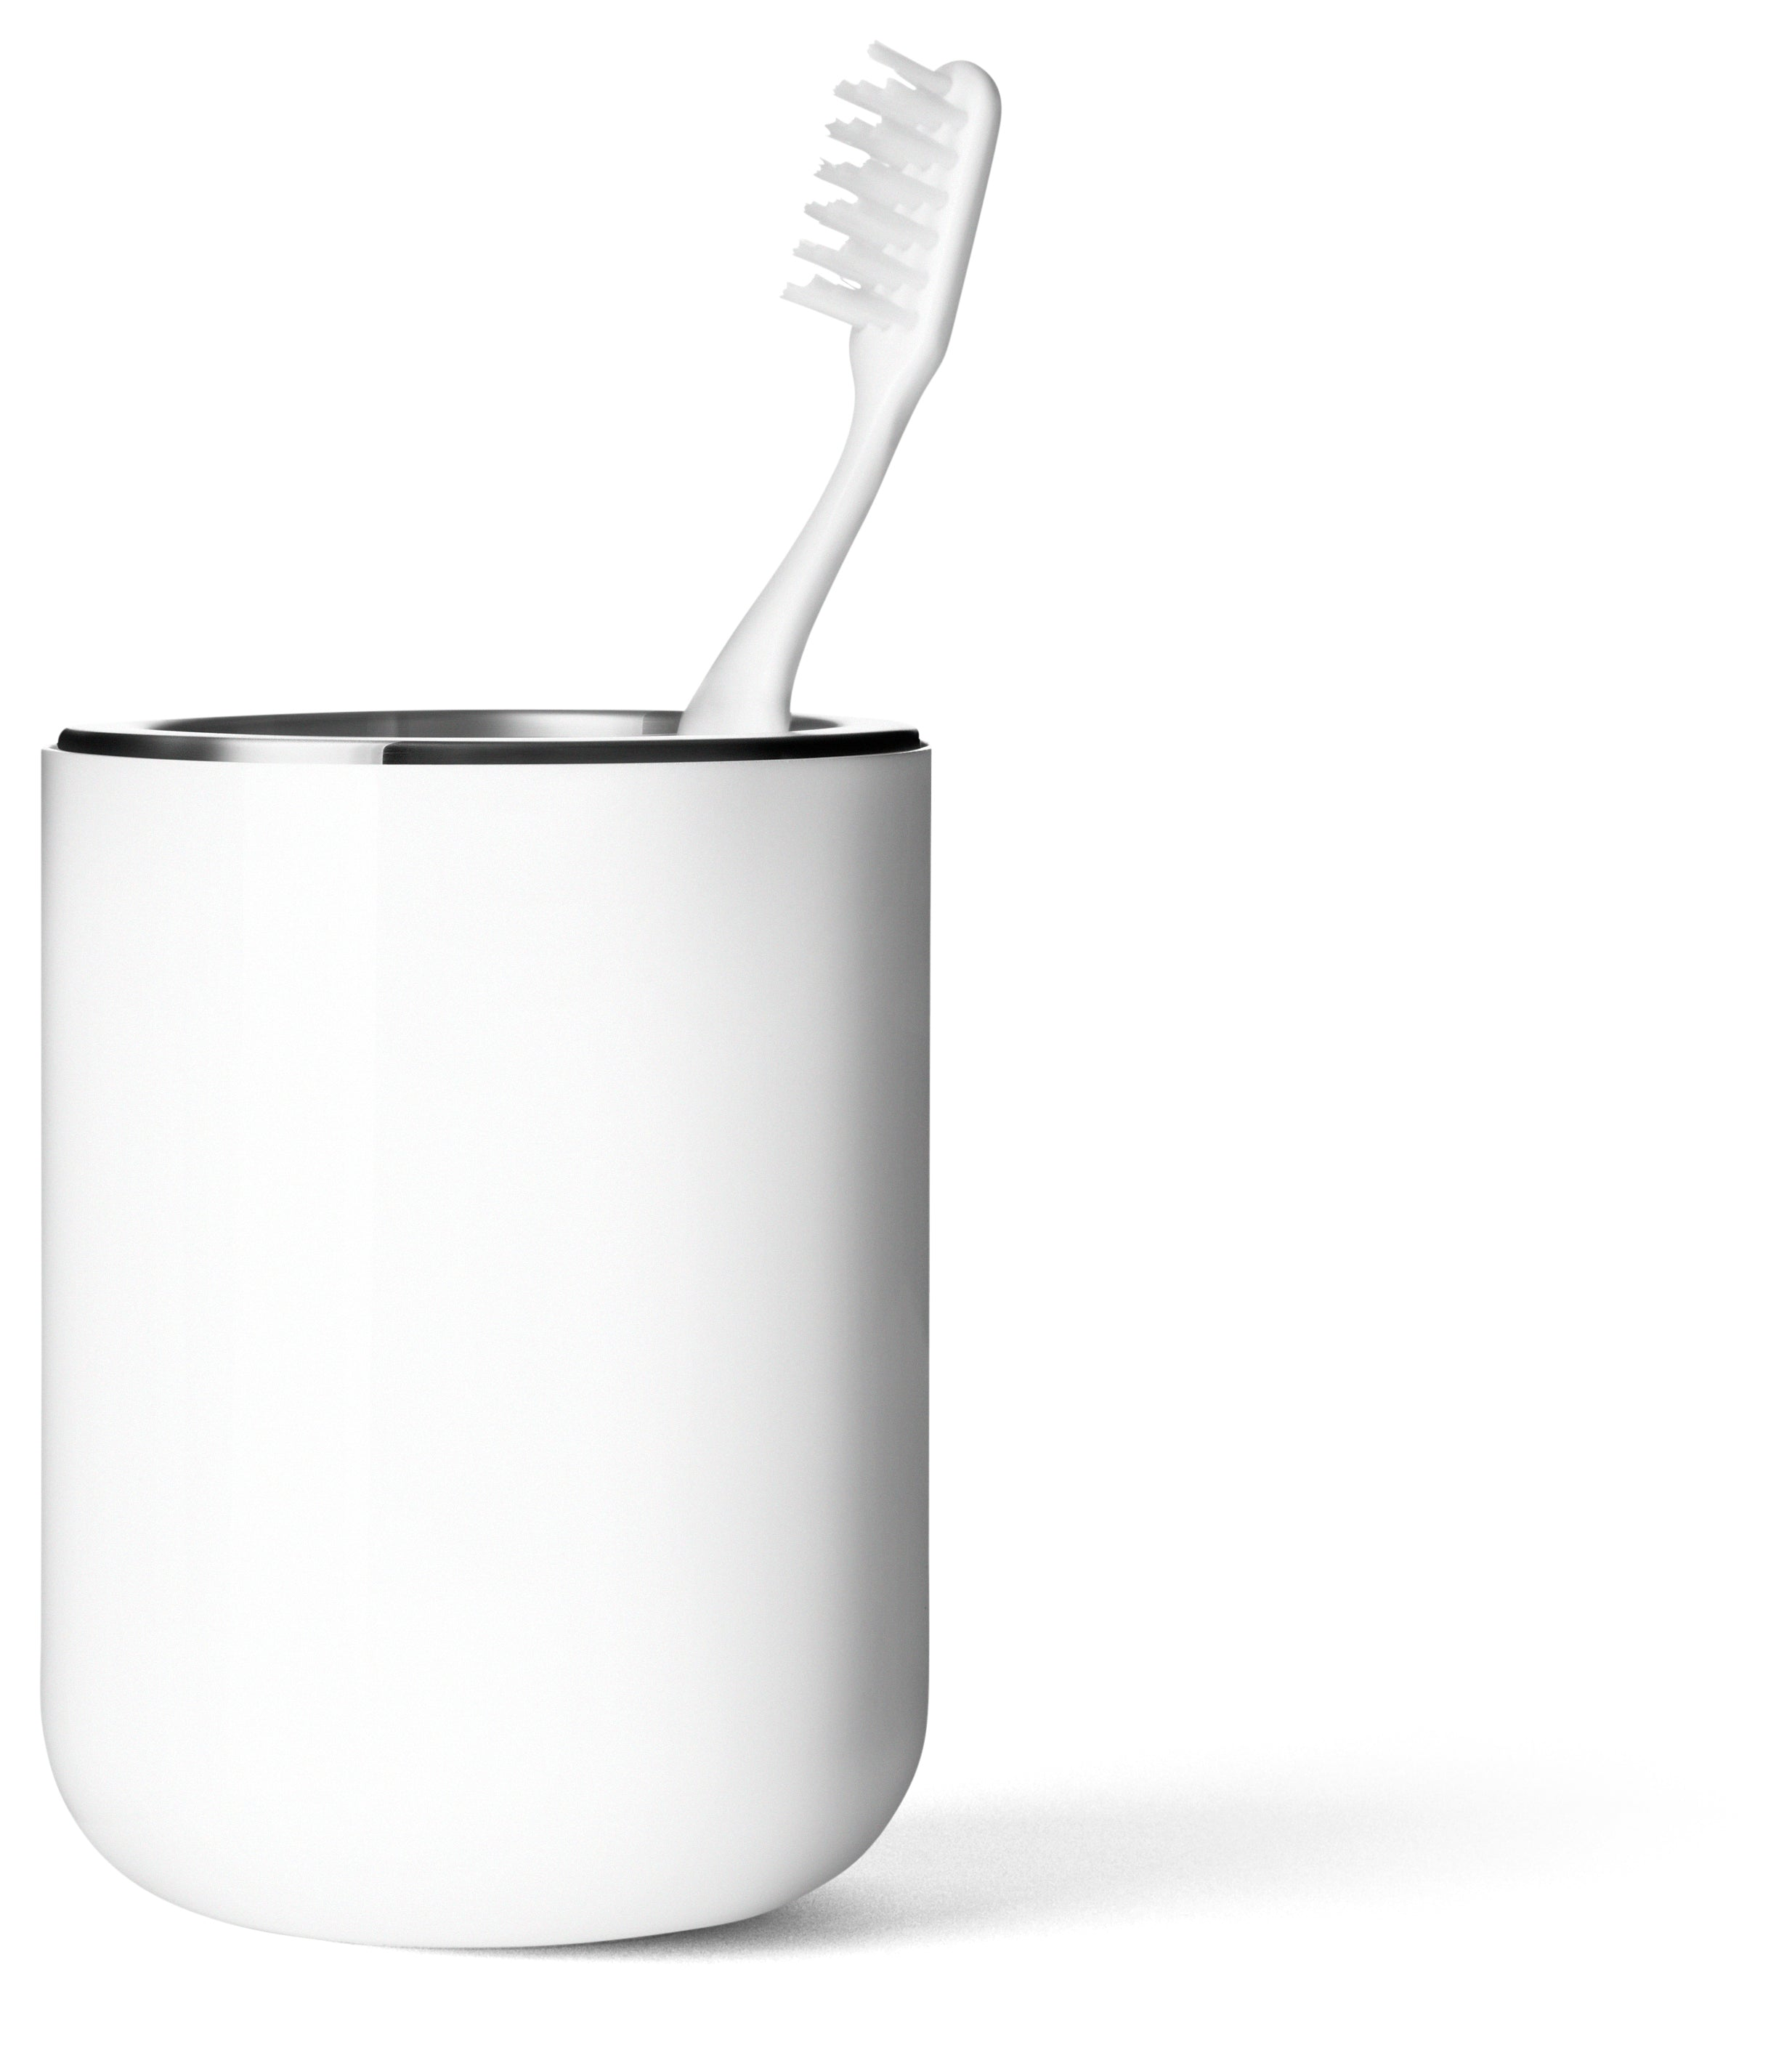 Bath Toothbrush Holder in Assorted Colors design by Norm Architects for Menu